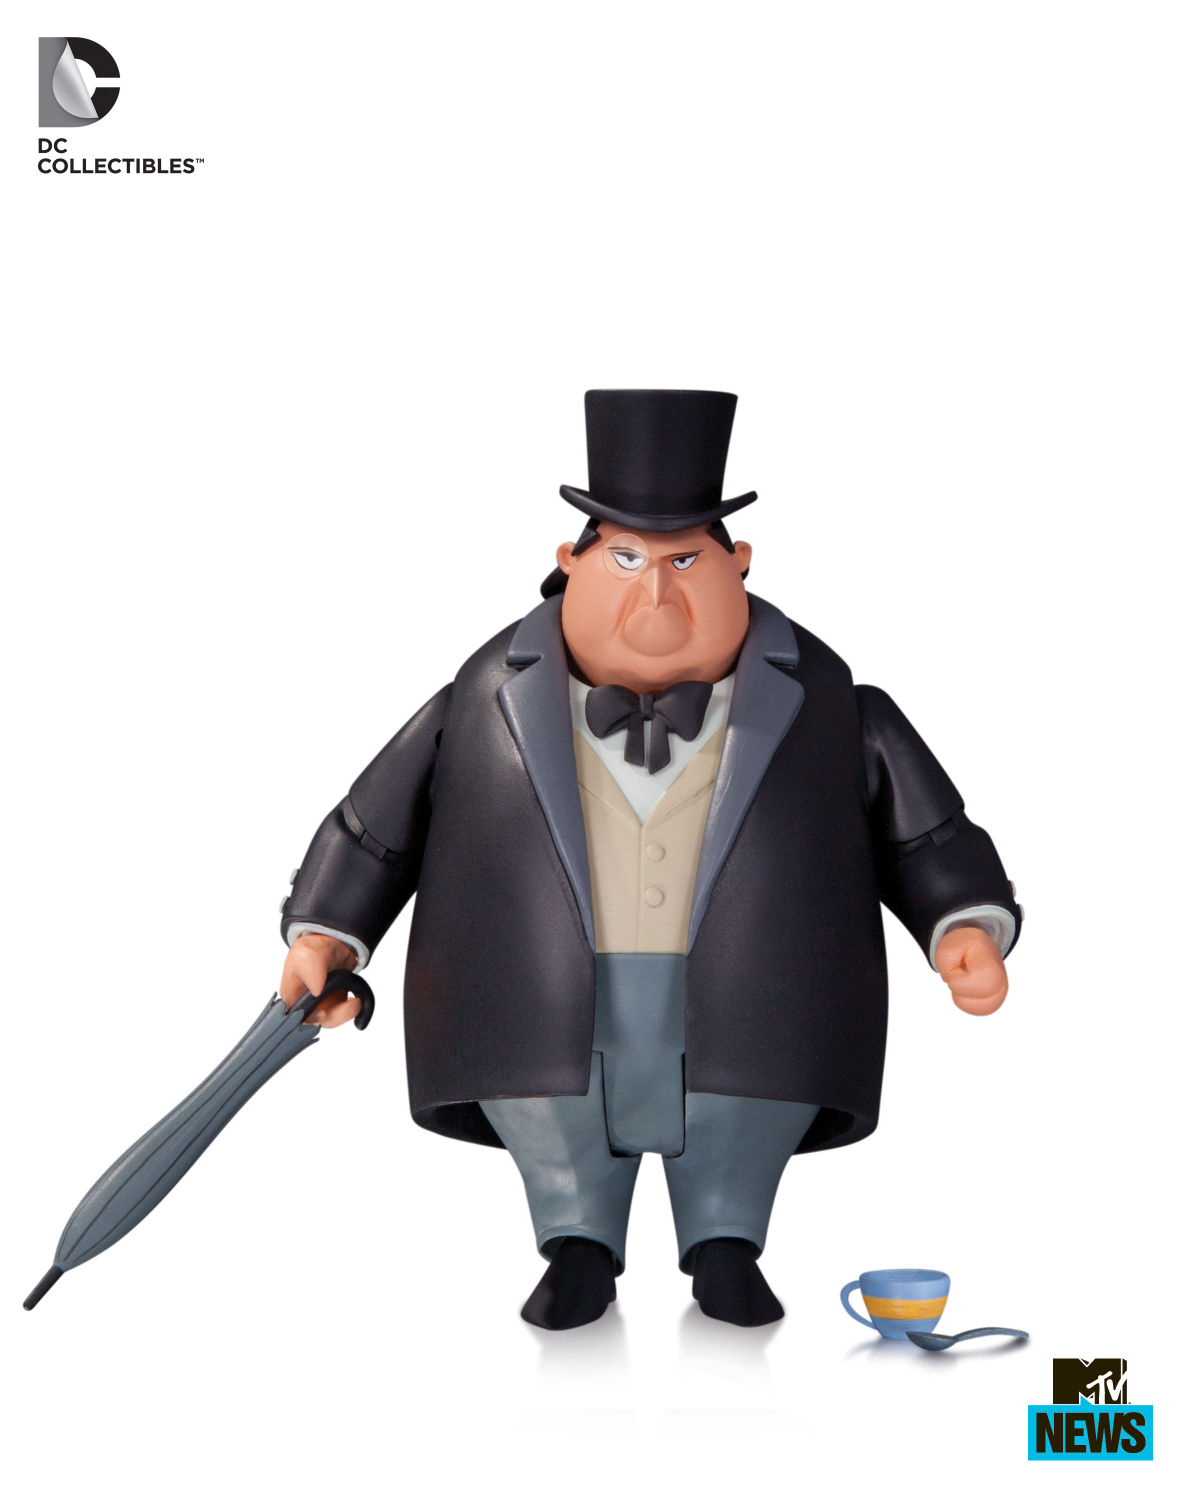 Penguin Animated Figure